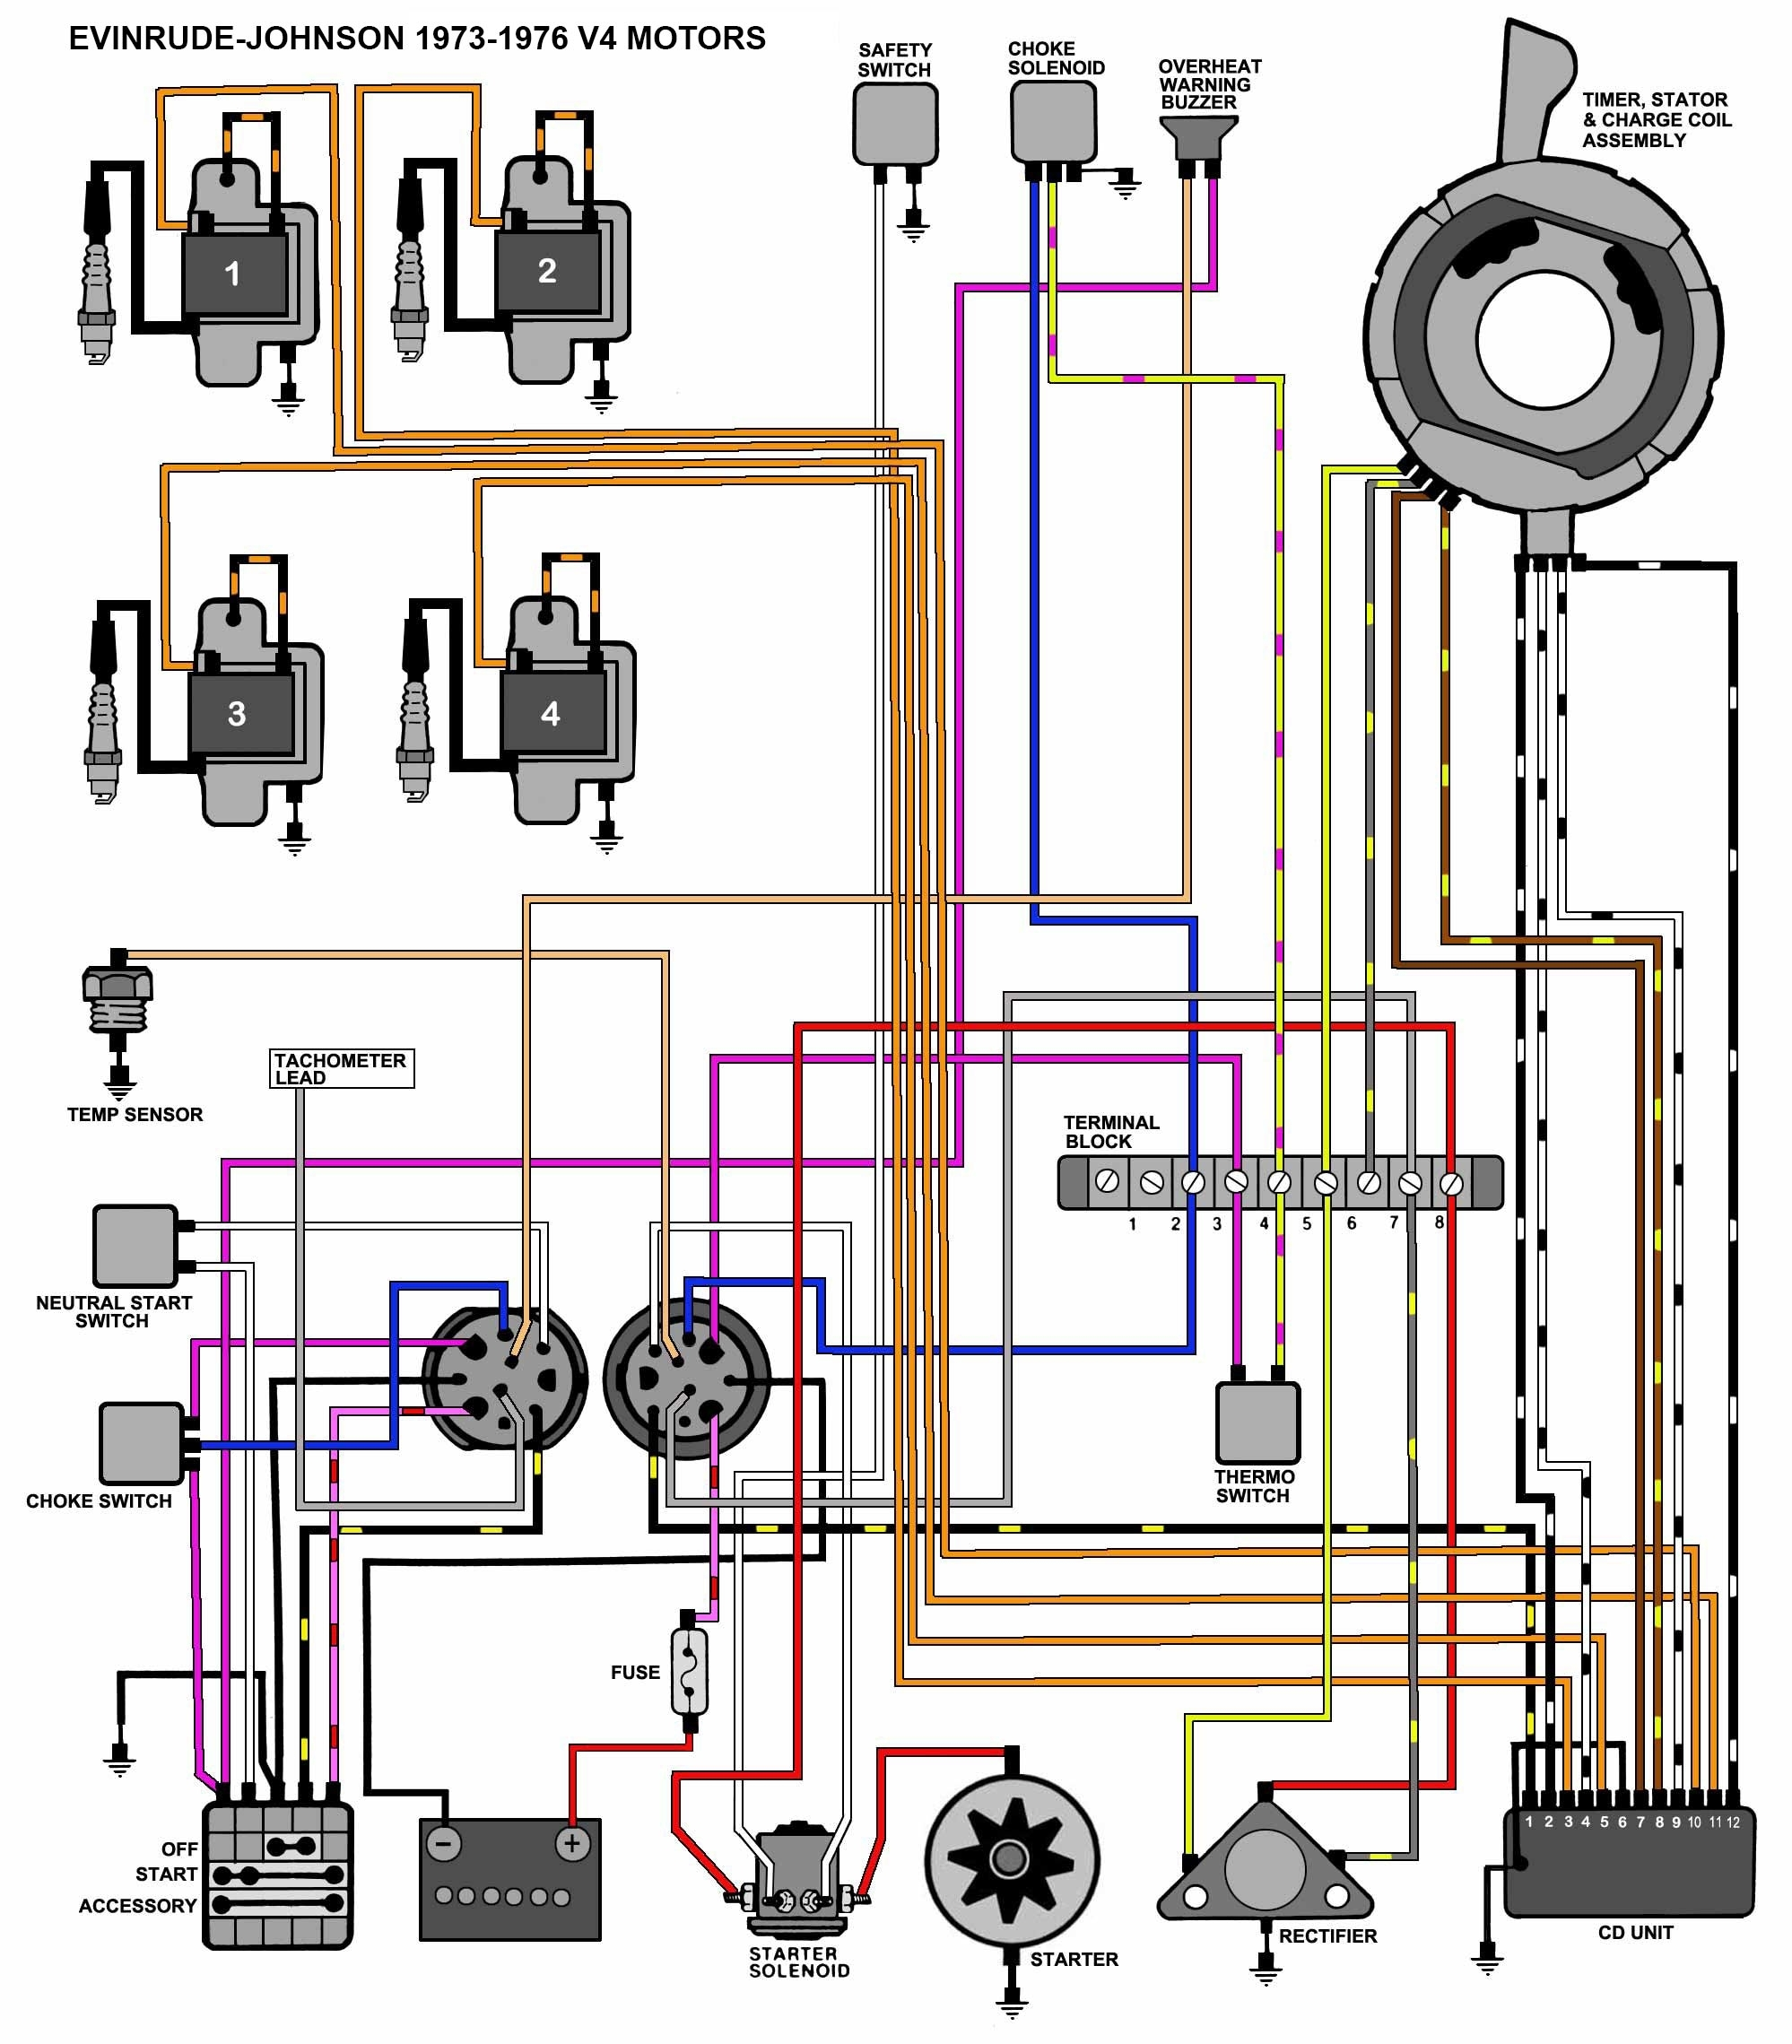 evinrude ignition switch wiring diagram with 1969 omc 55 wiring throughout 70 hp evinrude wiring diagram?resize\=665%2C759\&ssl\=1 wiring diagram for 1983 starcraft starcraft trailer wiring diagram pontoon boat wiring diagram at letsshop.co